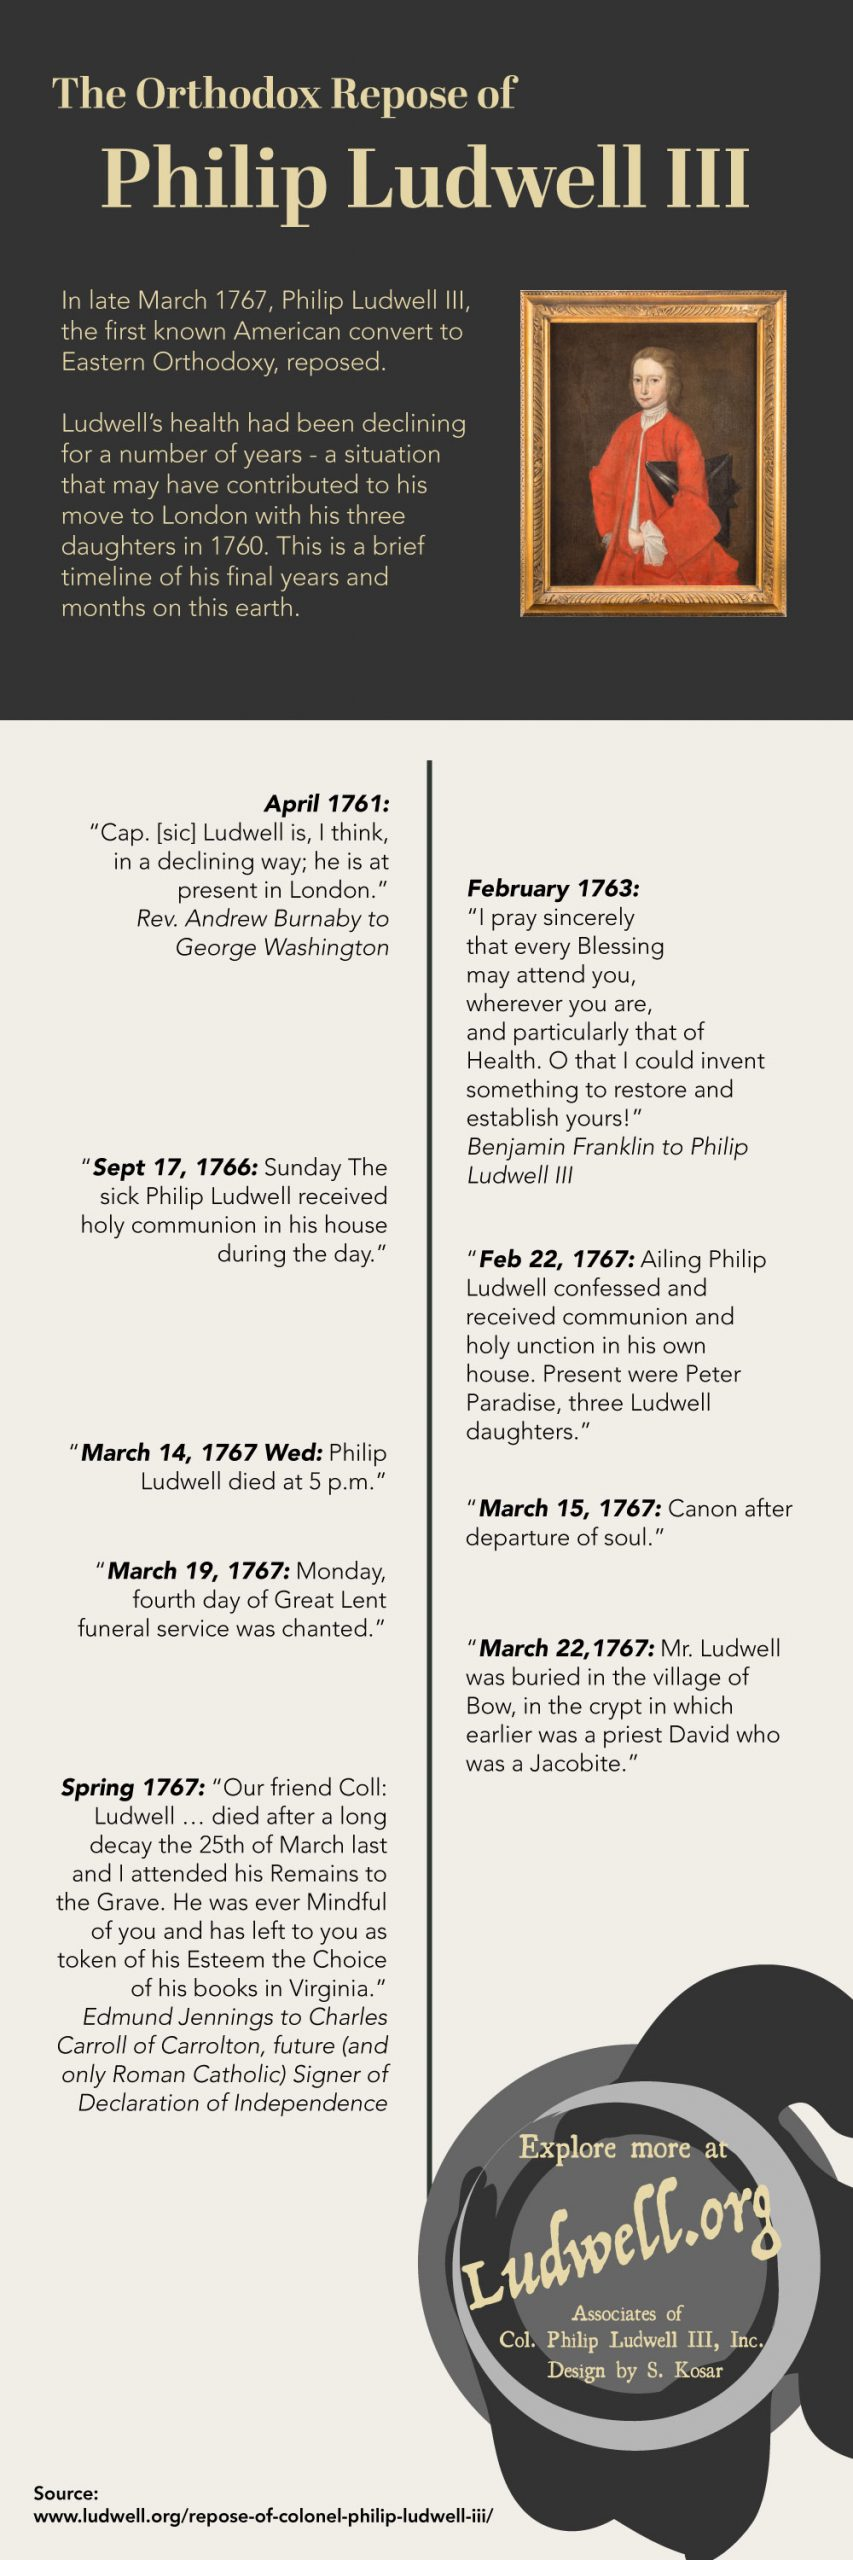 infographic - the orthodox christian last days and death of philip ludwell III